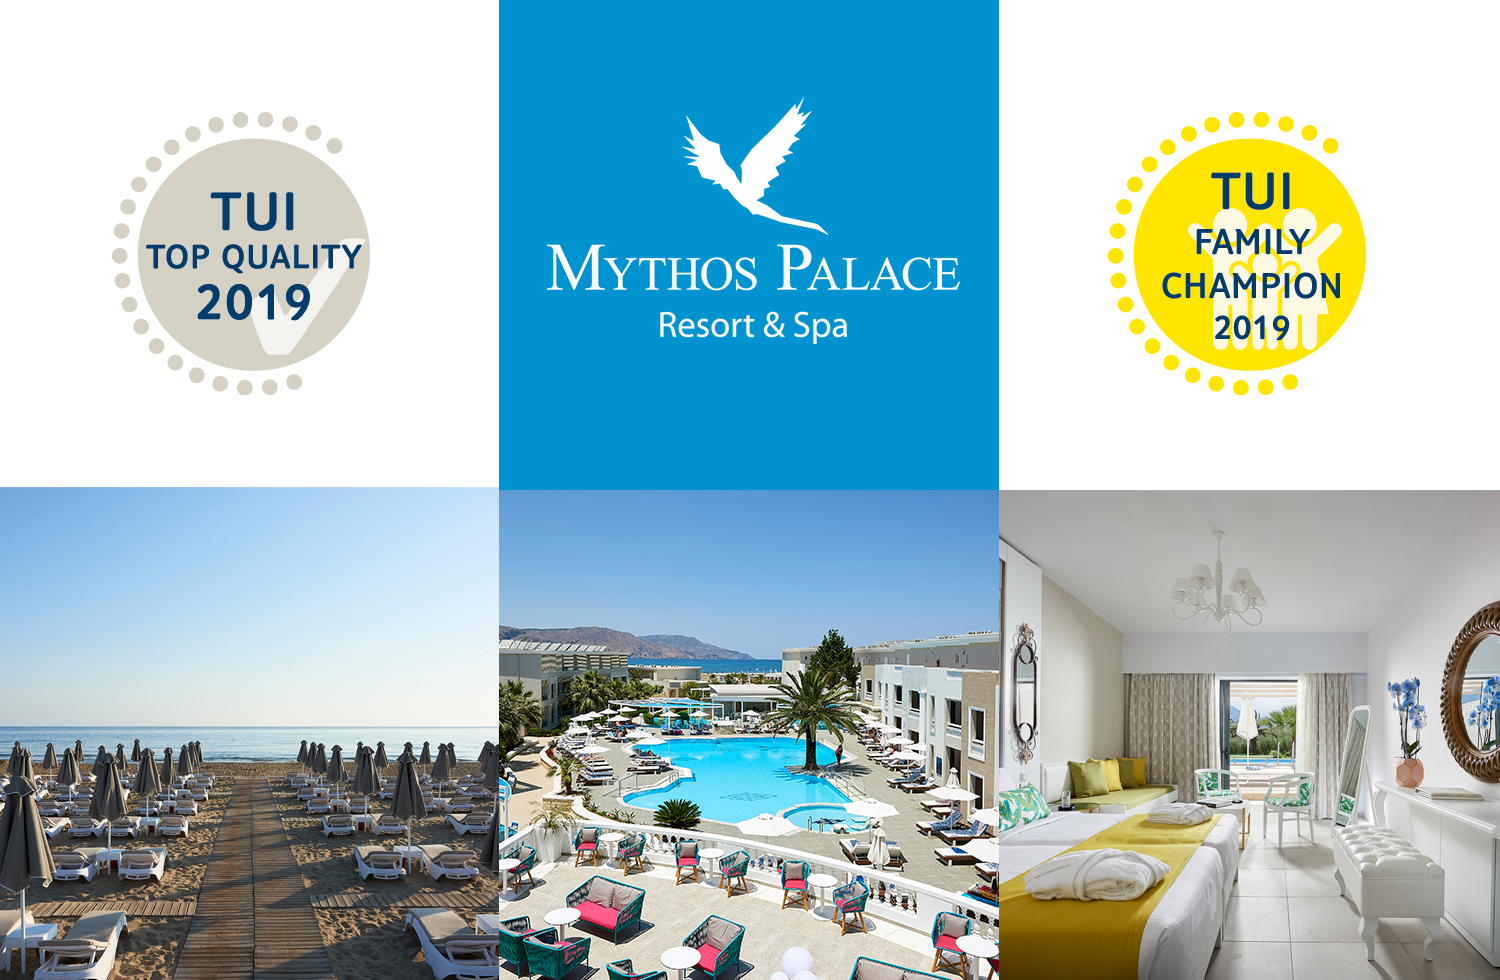 Mythos Palace Resort & Spa: TUI's Choice For Family Vacations